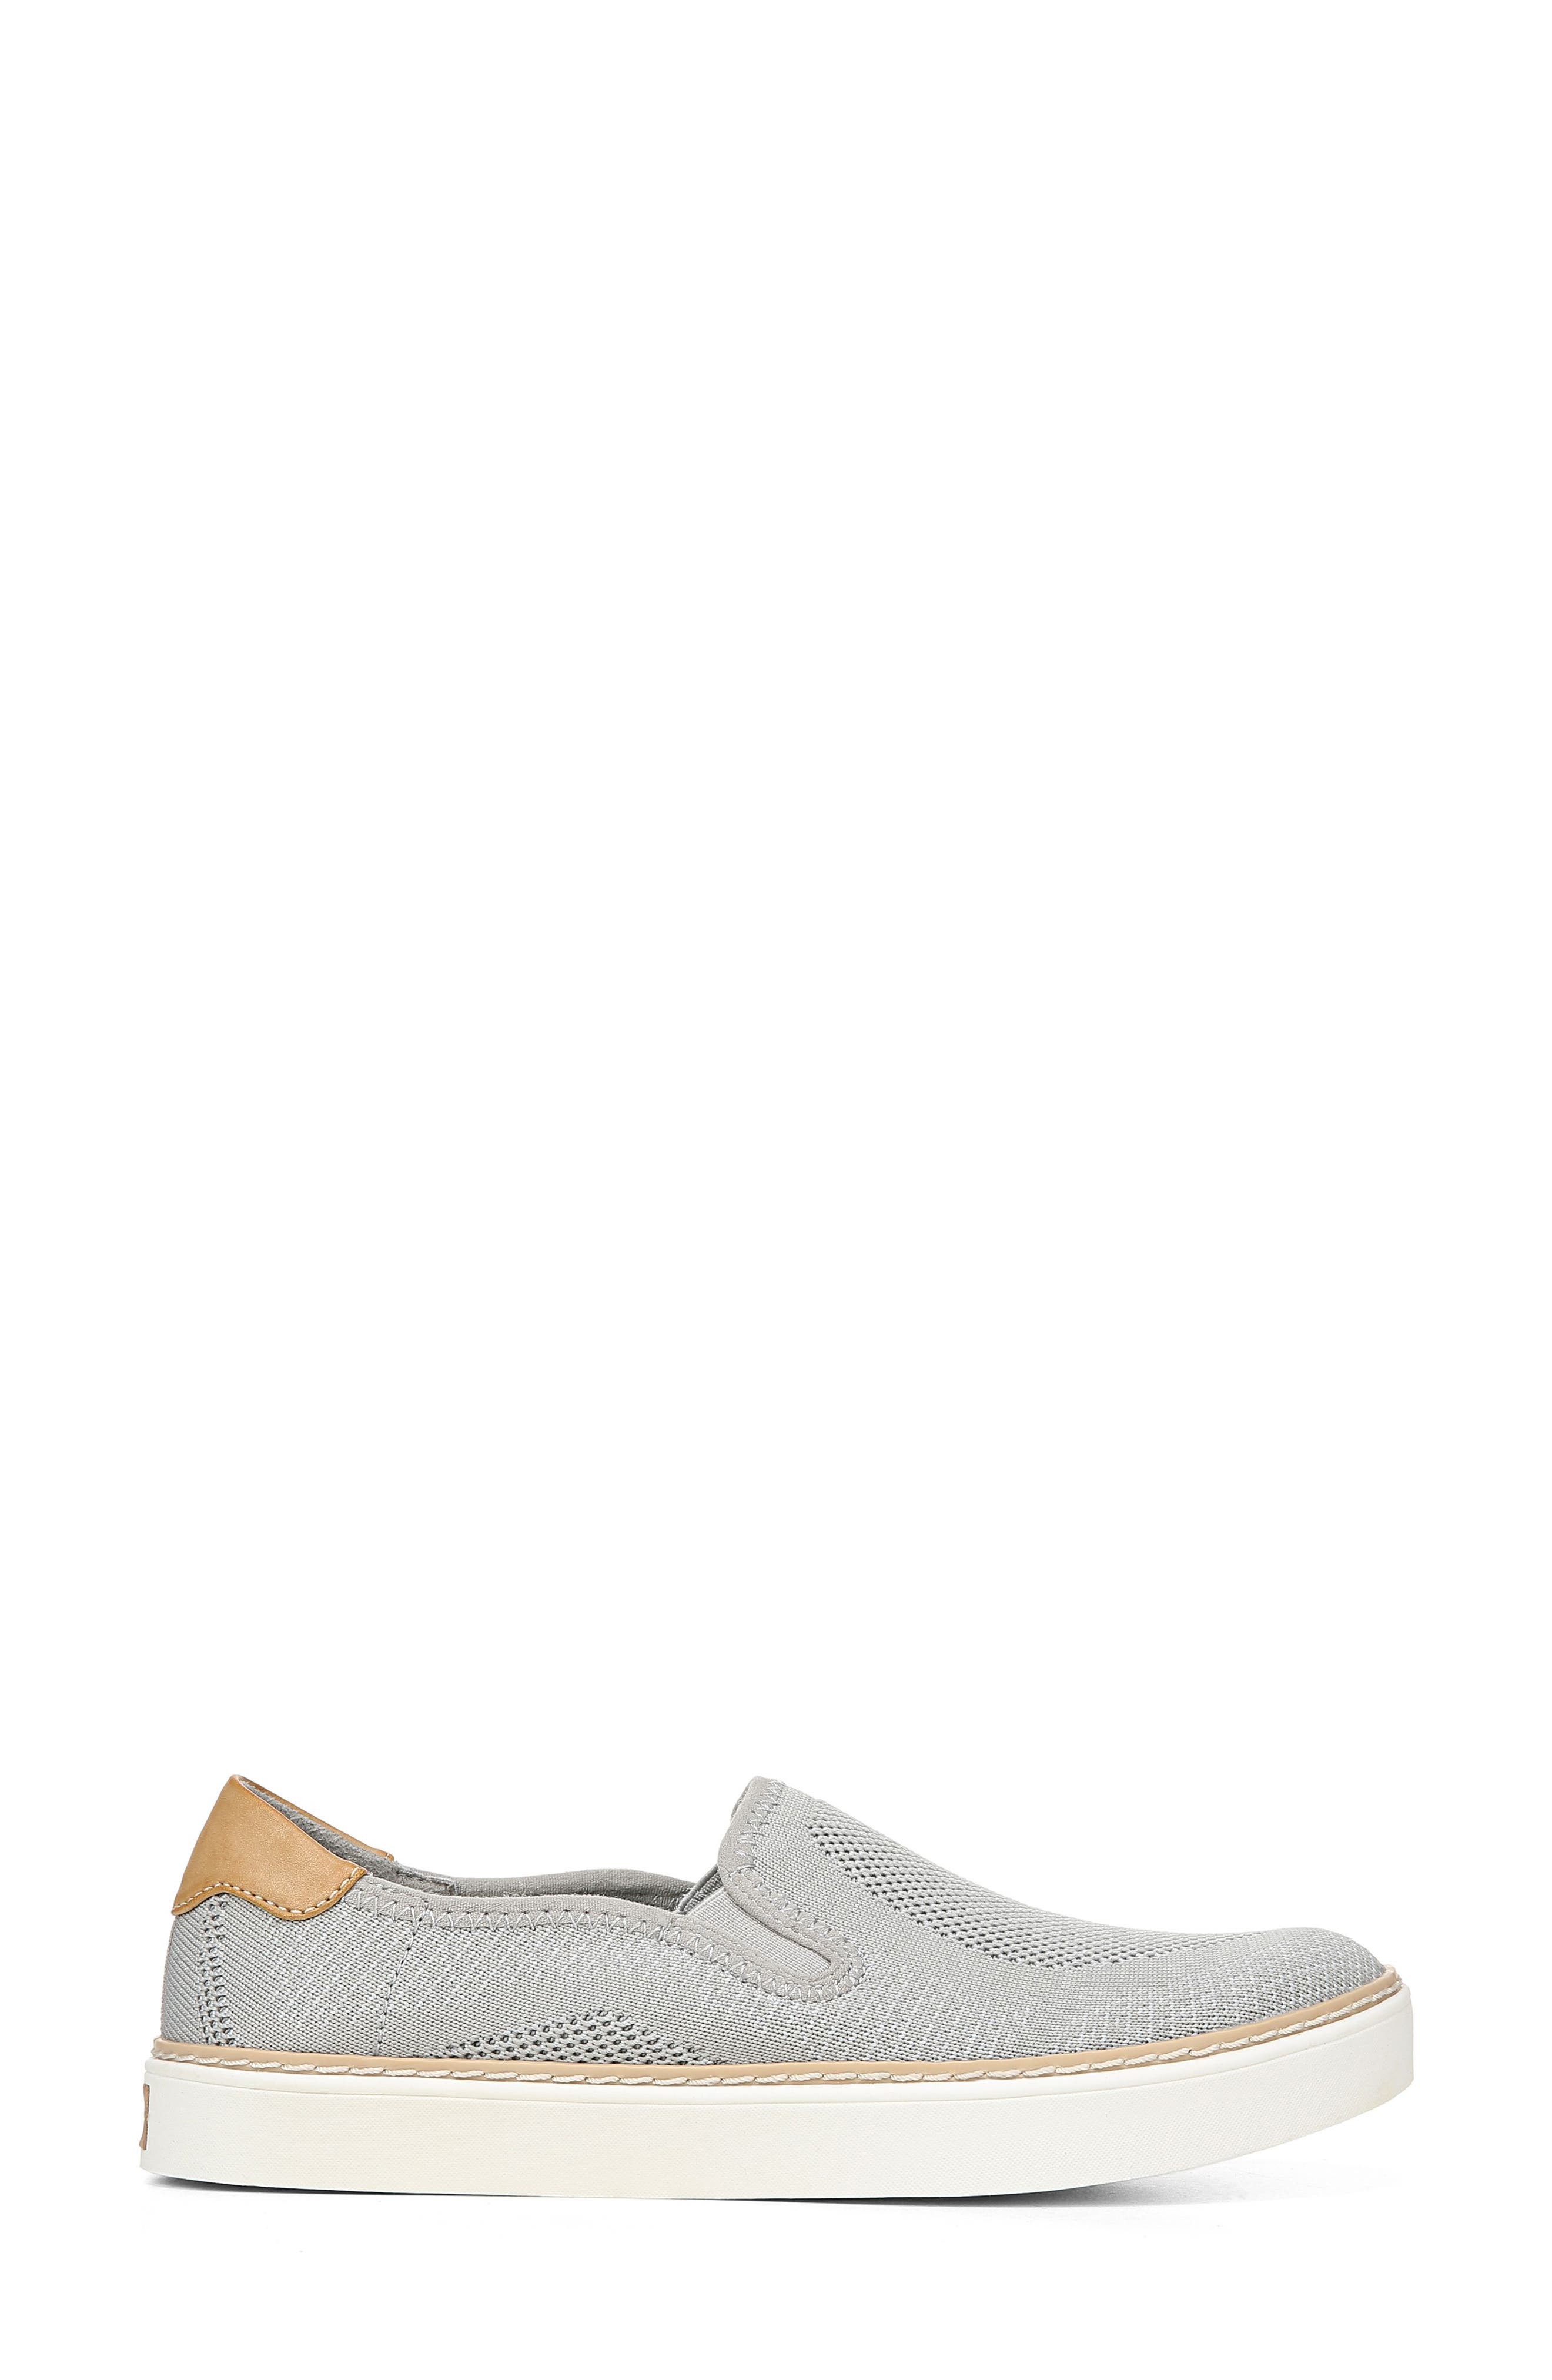 ,                             Madi Slip-On Sneaker,                             Alternate thumbnail 3, color,                             GREY KNIT FABRIC